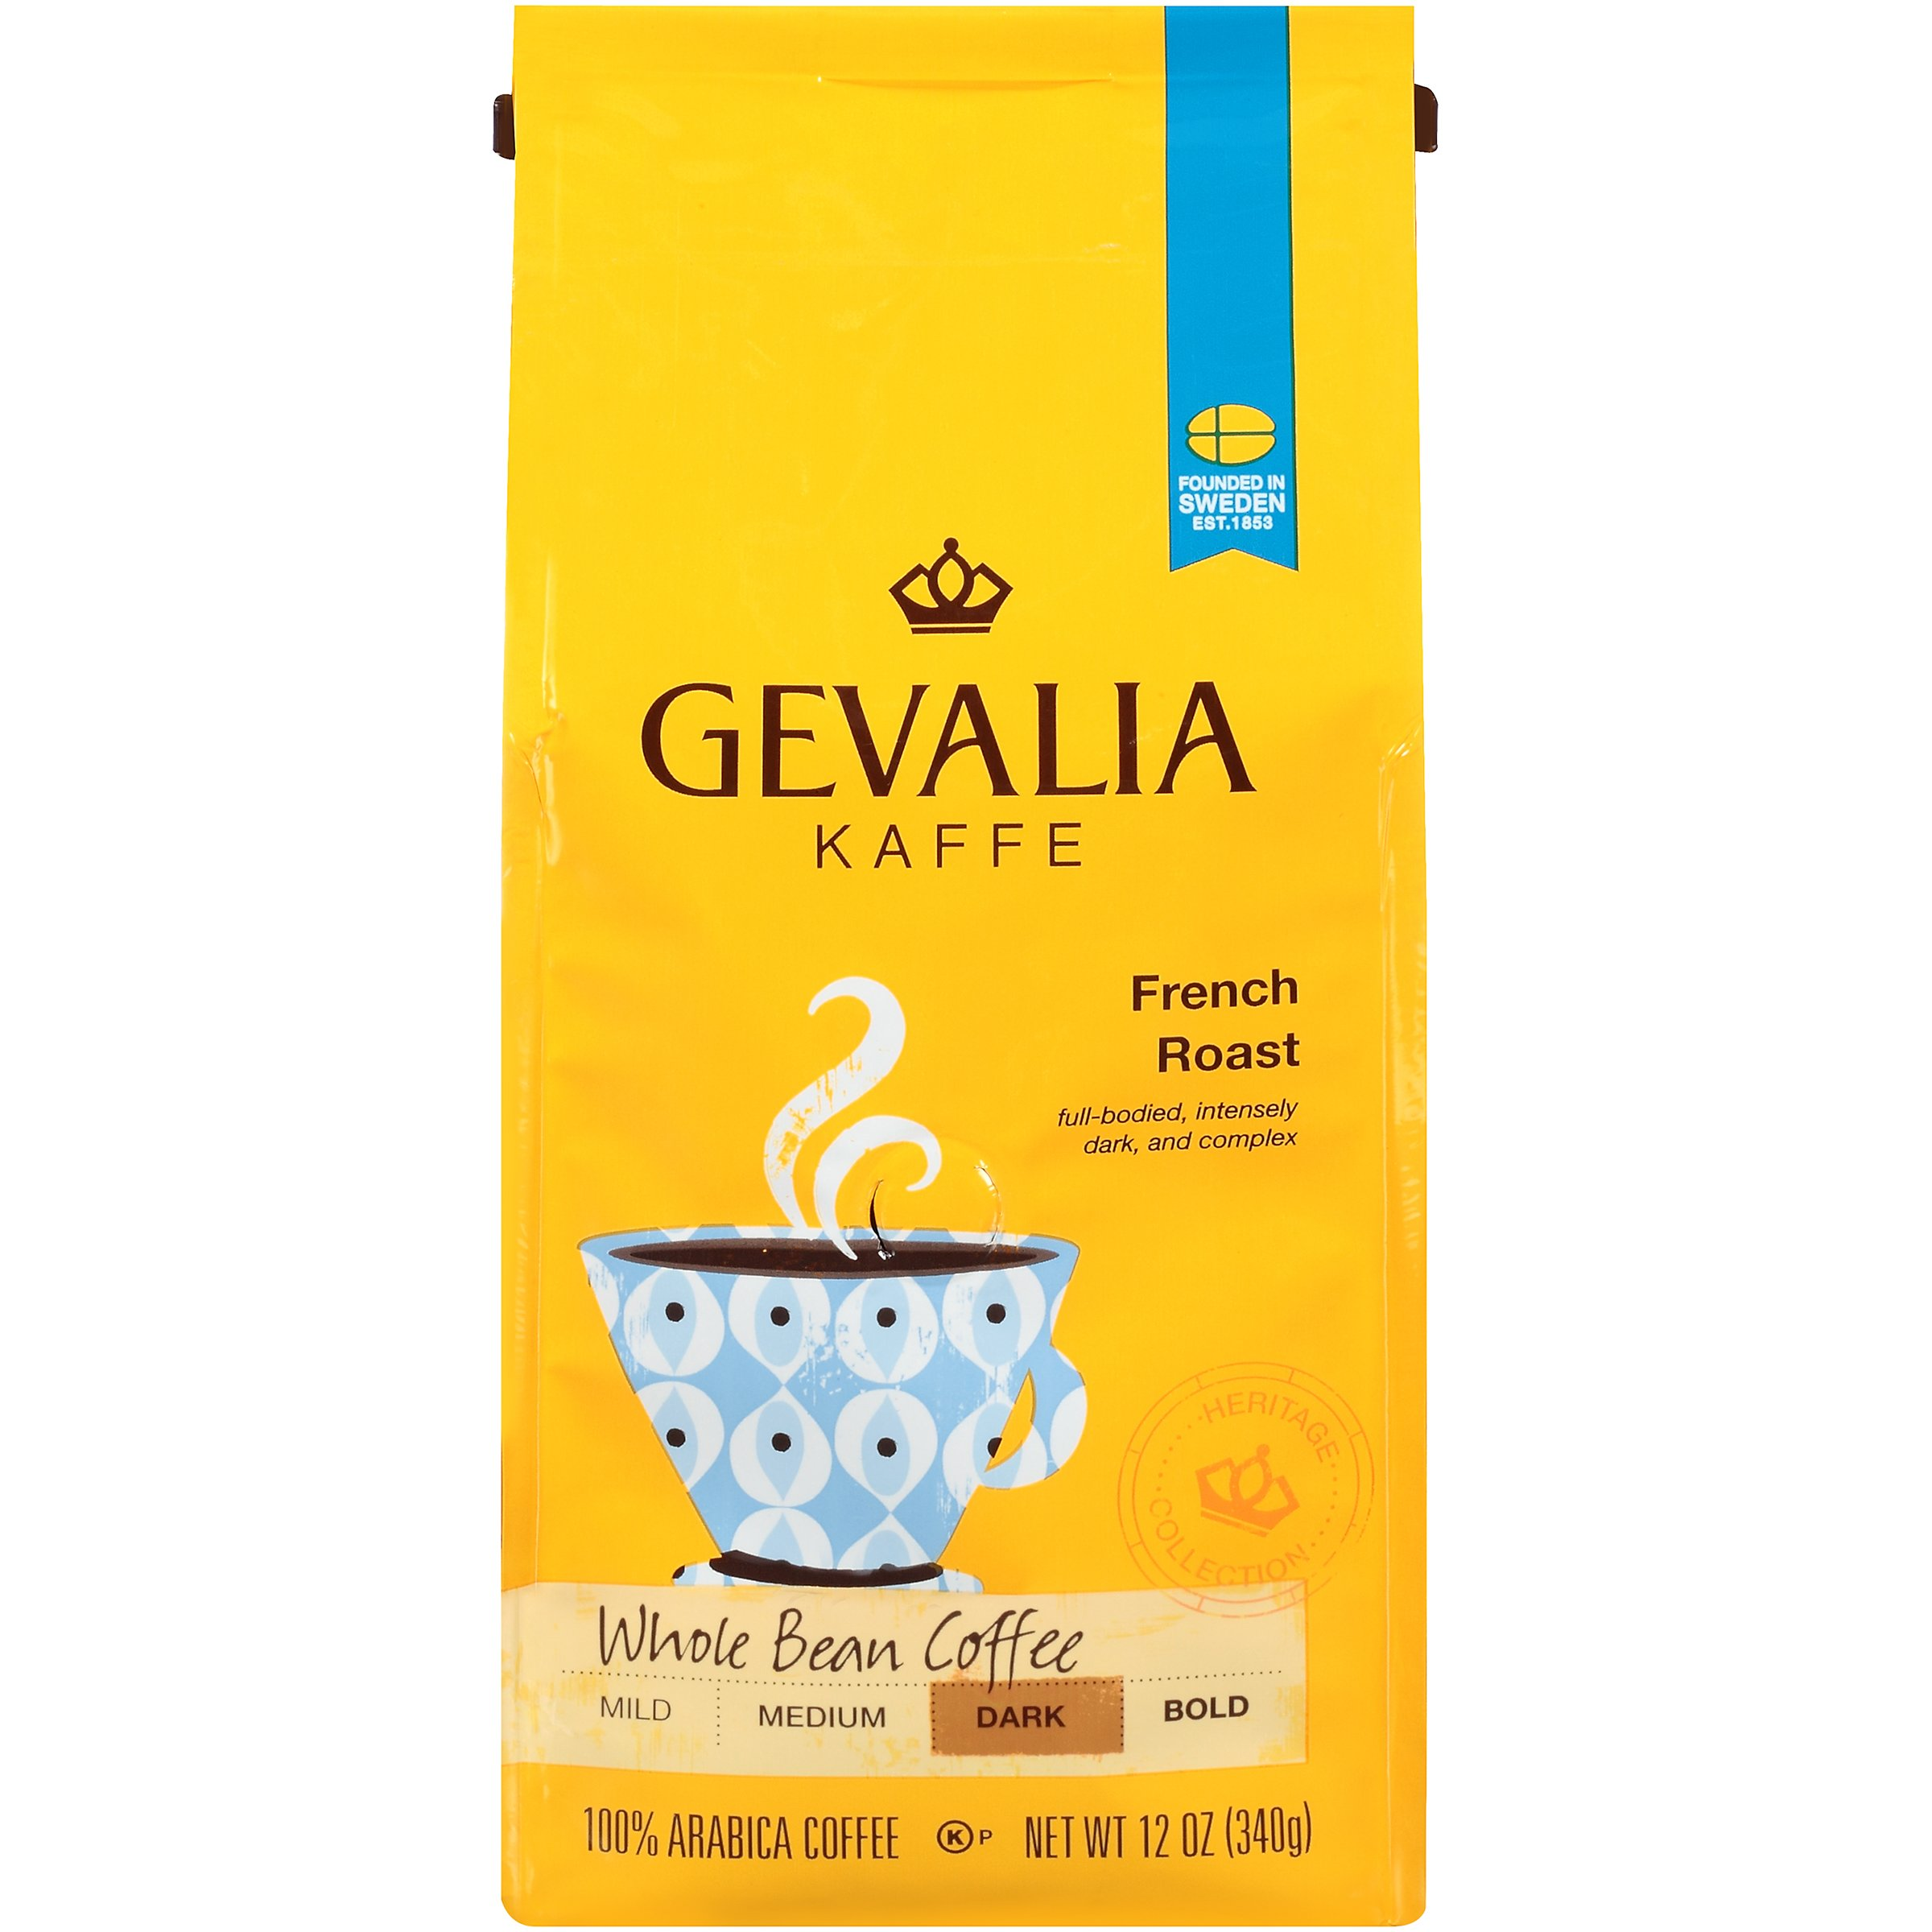 Gevalia French Roast Whole Bean Coffee (12 oz Bags, Pack of 6) by Gevalia